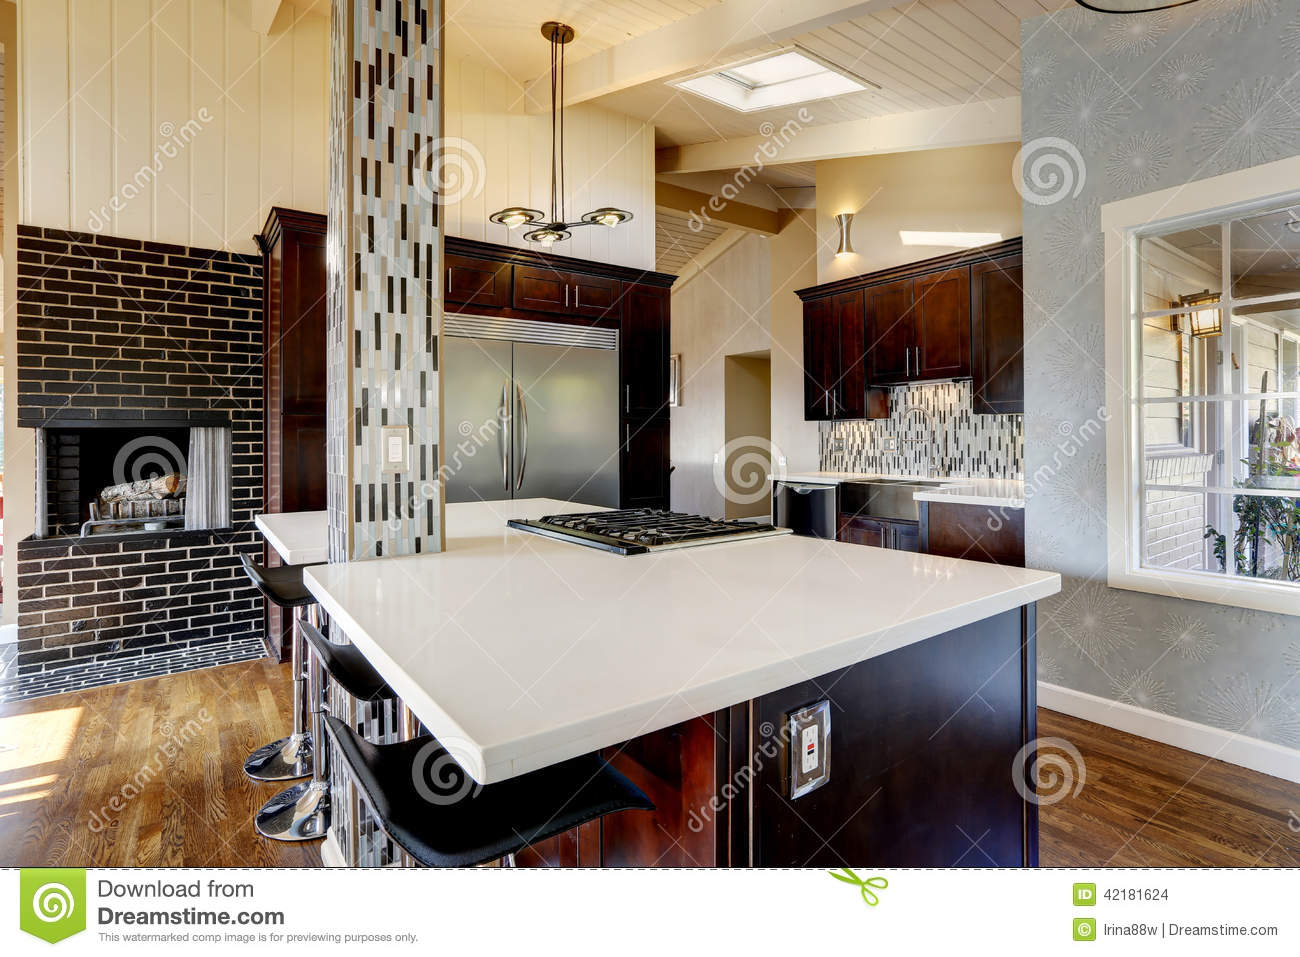 Cucina Moderna Con Il Camino Stock Images - 34 Photos